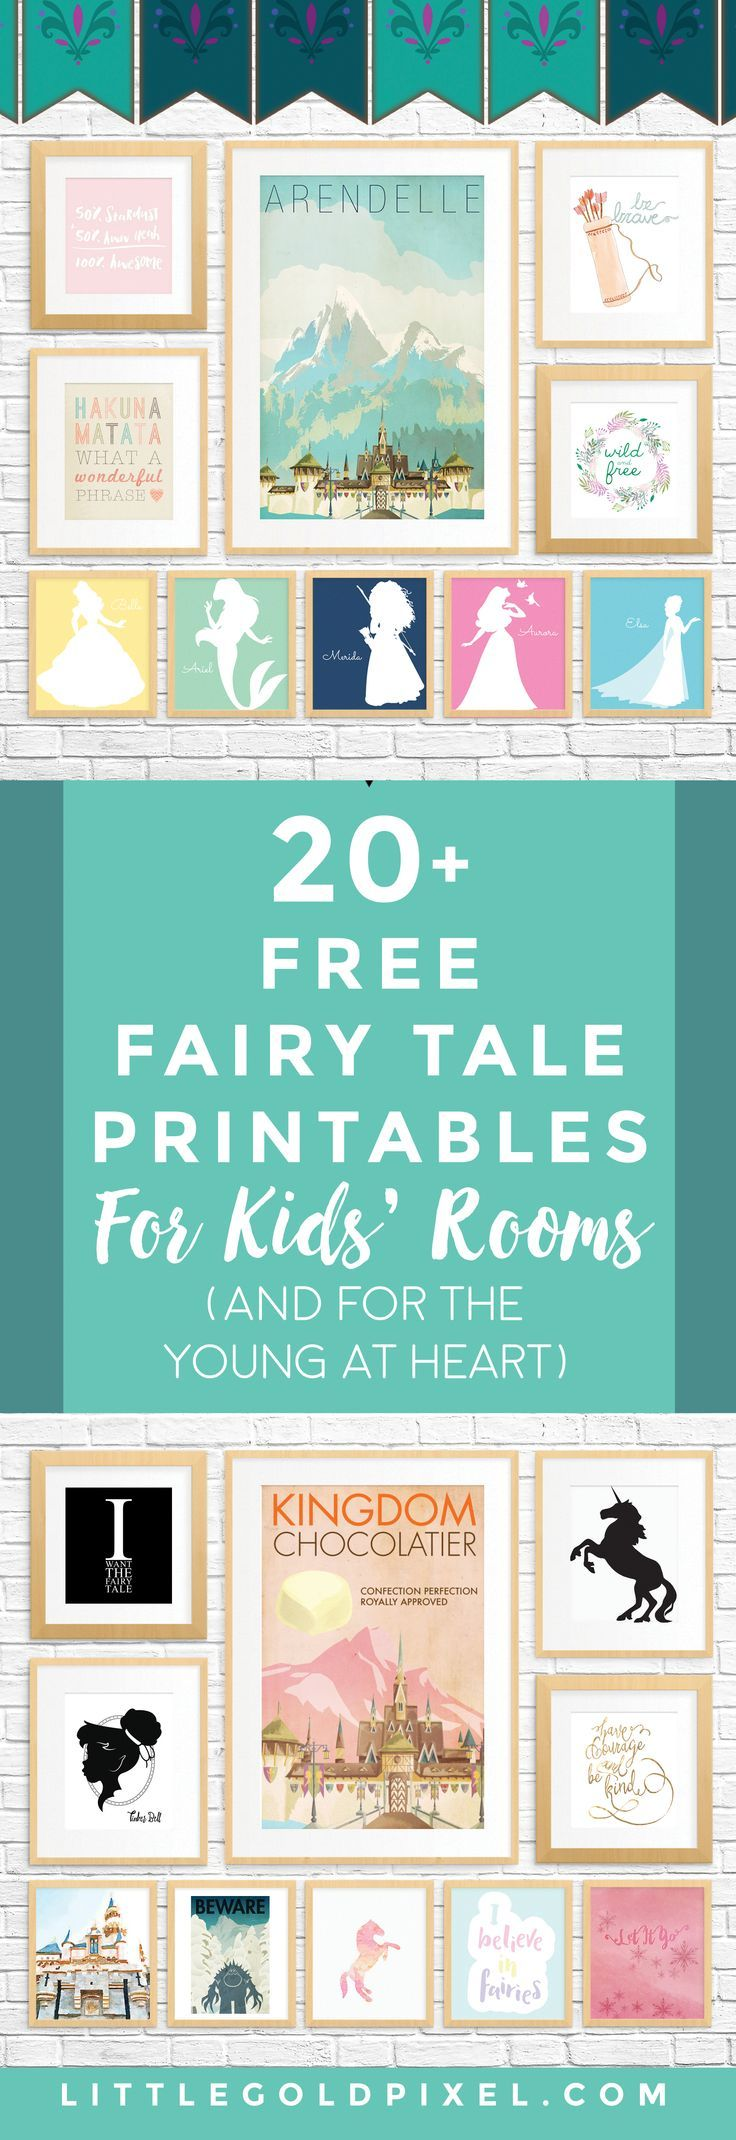 best 25 disney font free ideas on pinterest disney fonts silhouette cameo disney and. Black Bedroom Furniture Sets. Home Design Ideas